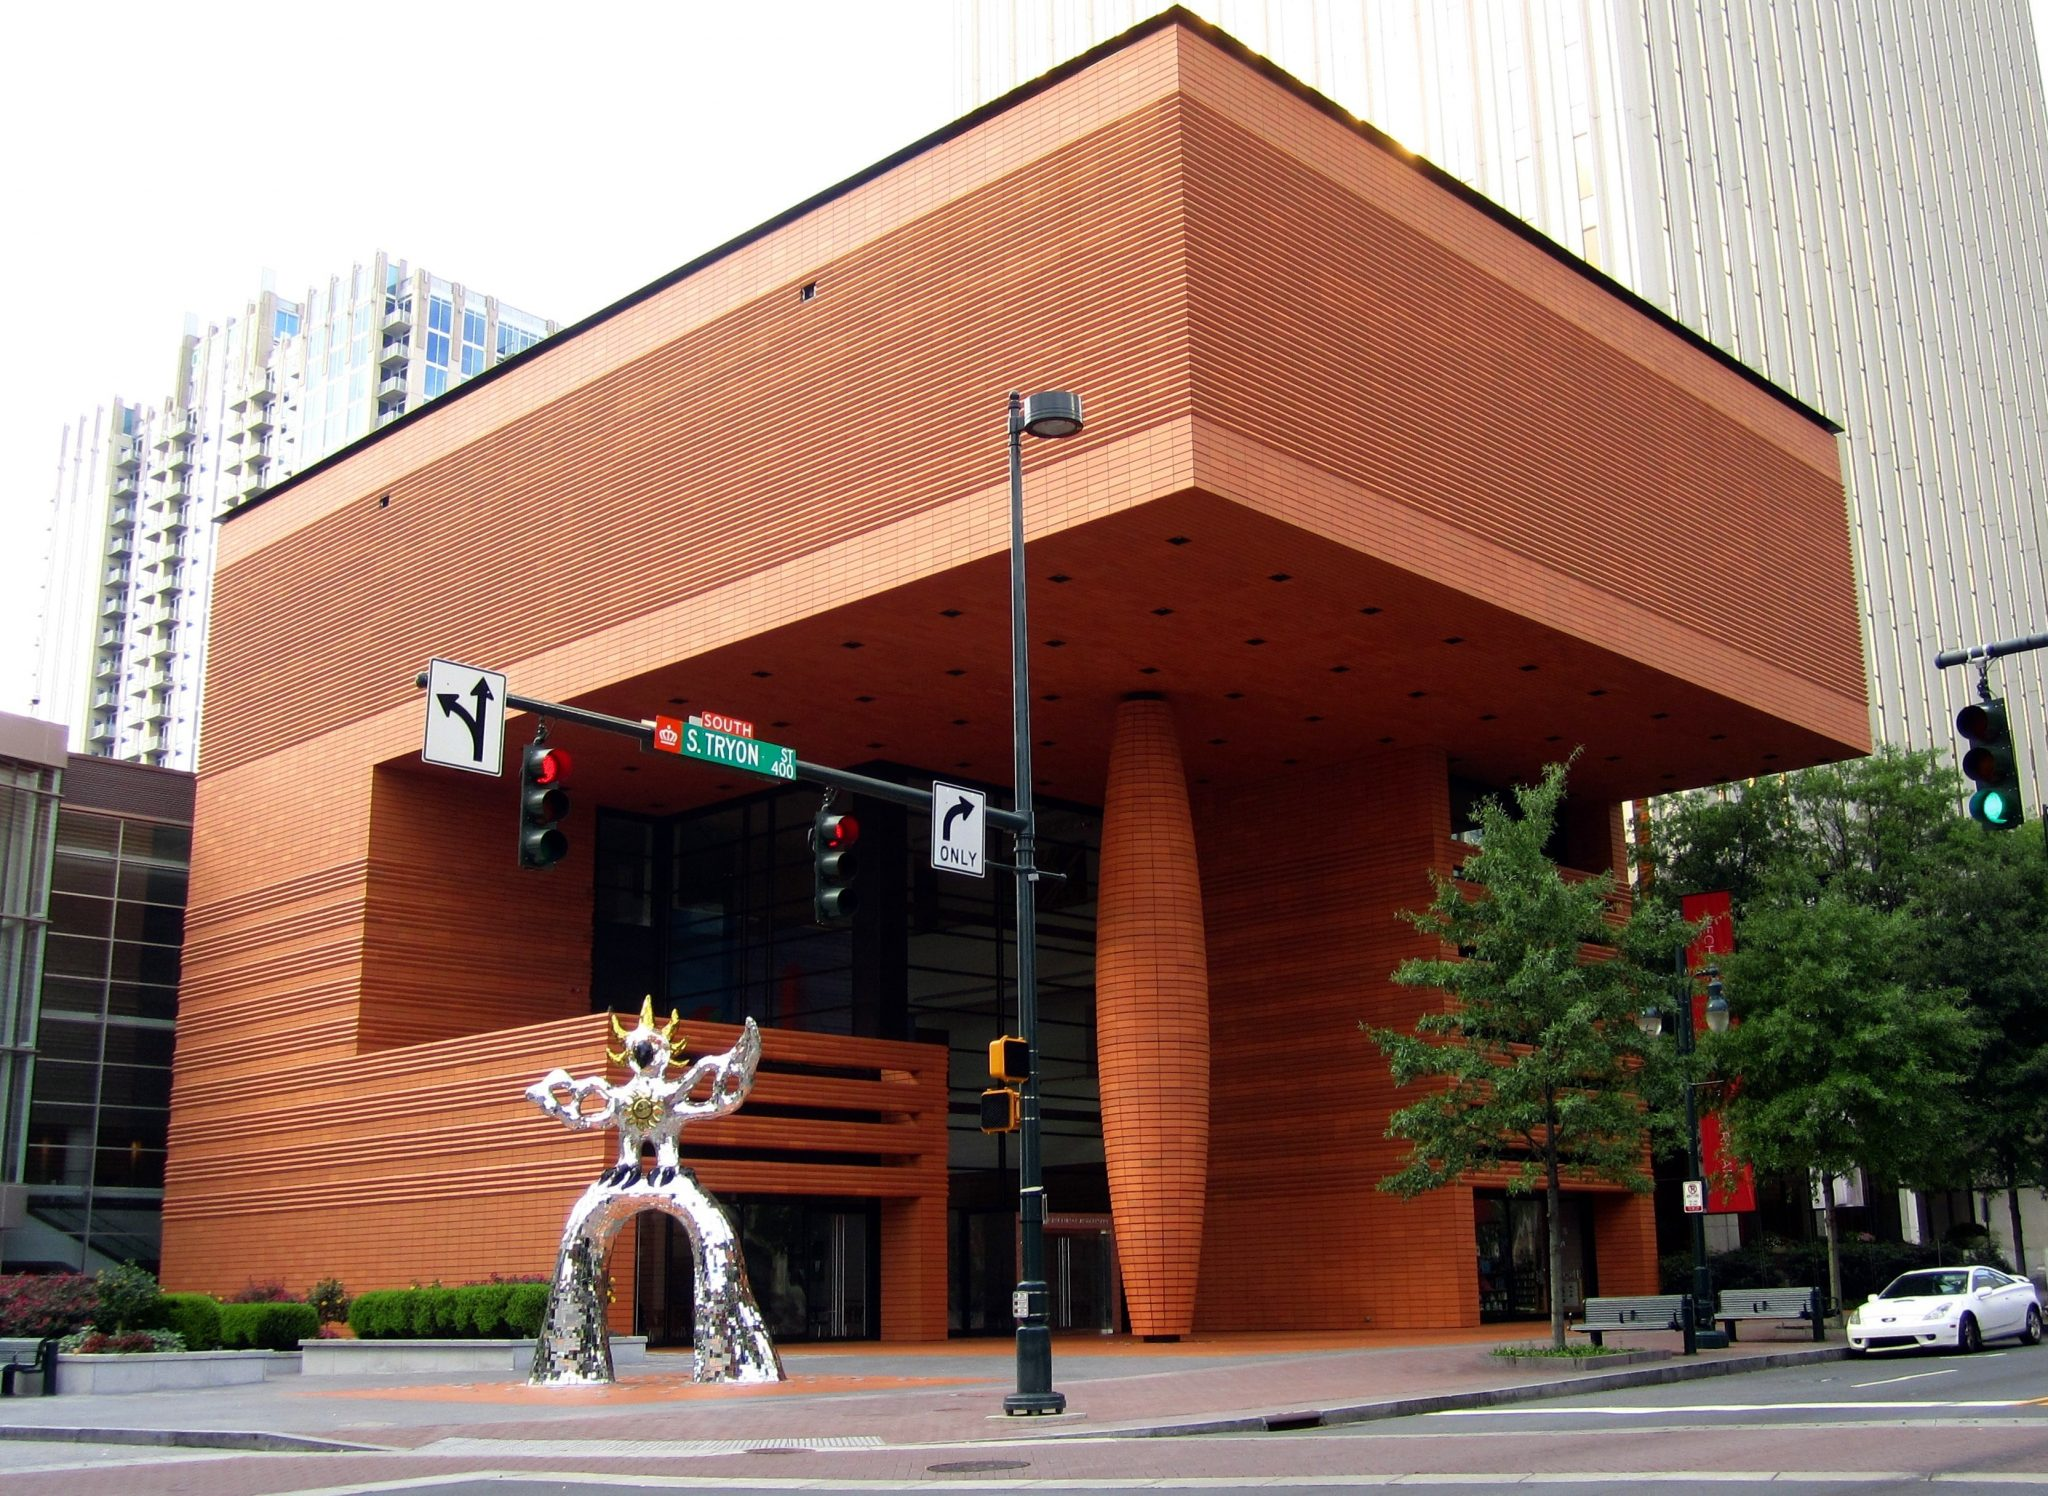 ماریو بوتا Bechtler Museum of Modern Art in Charlotte, North Carolina